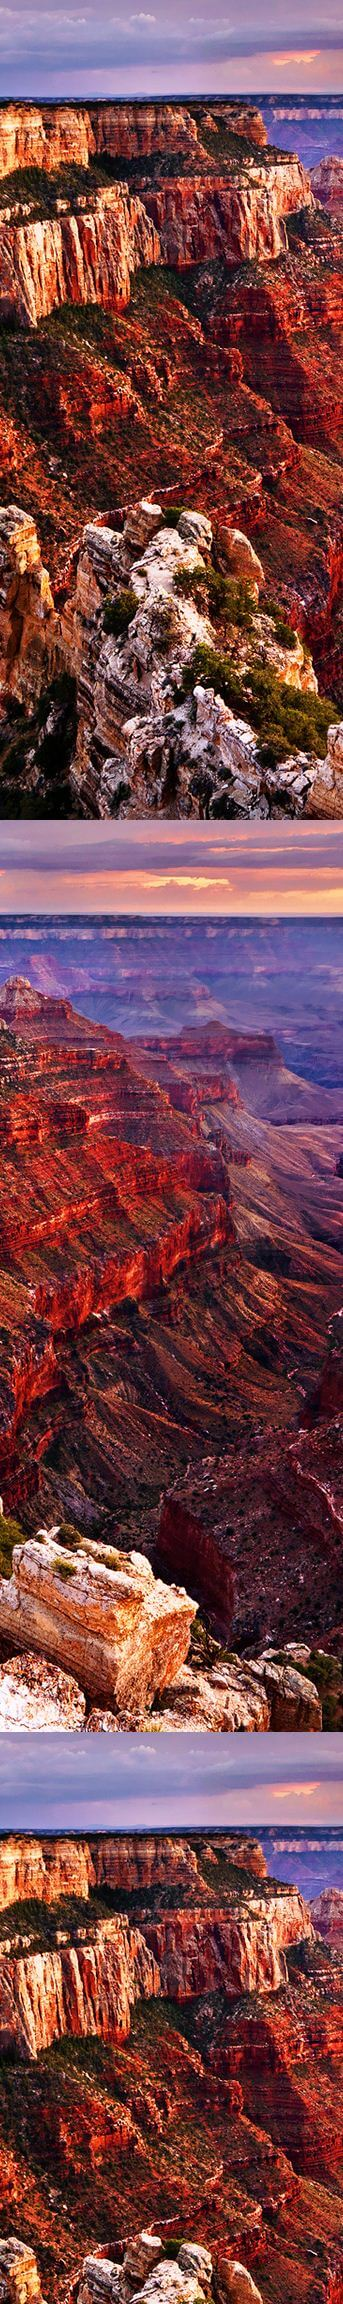 arizona-luxury-expeditions-reviews